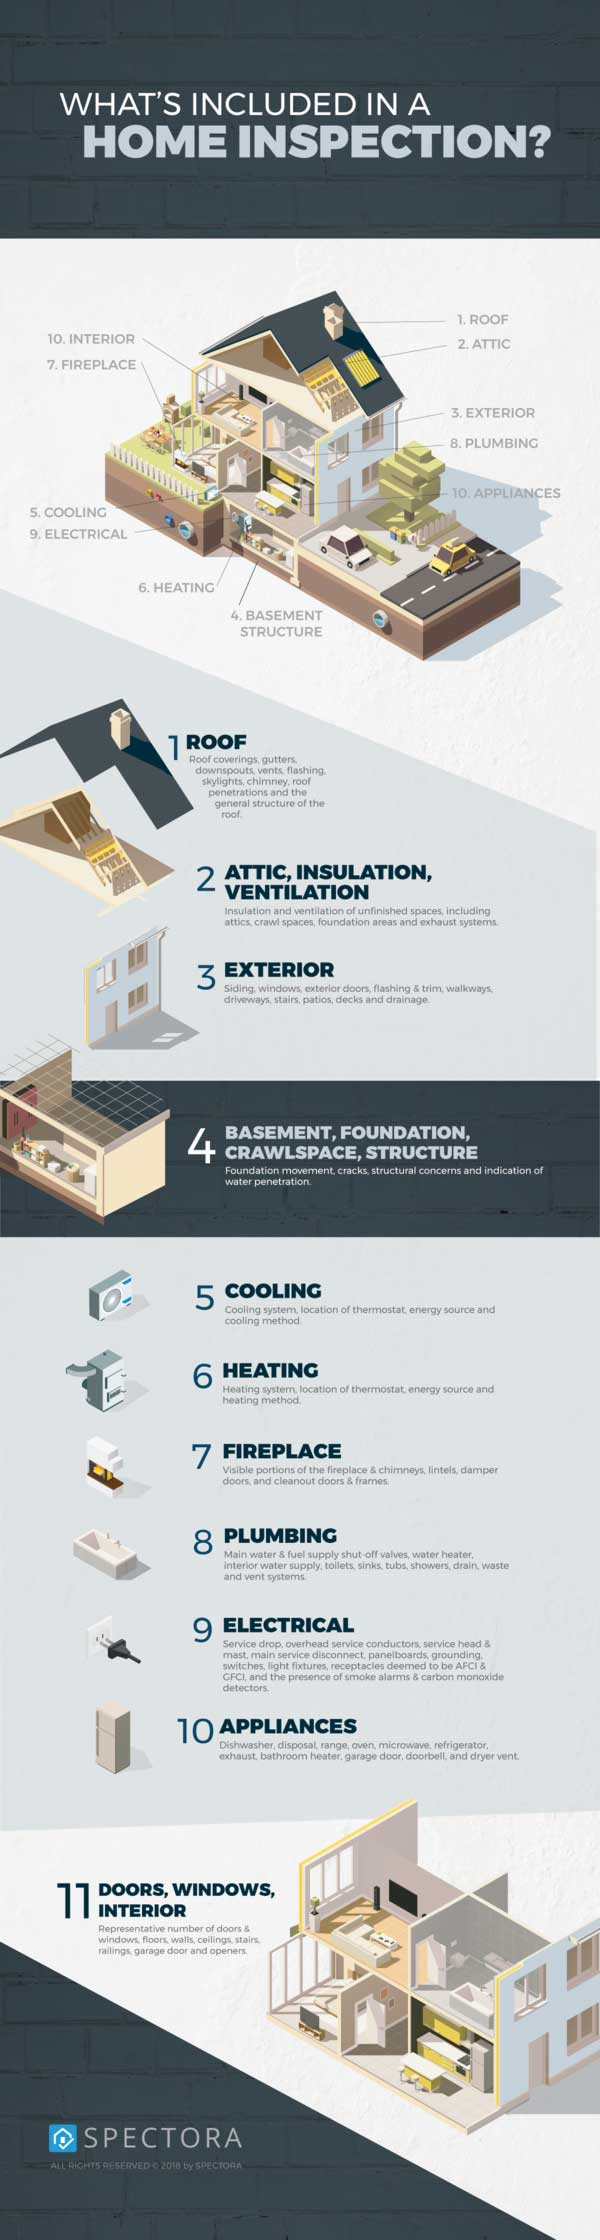 2K Inspection Houston Professional Inspection Services what is inspected graphic